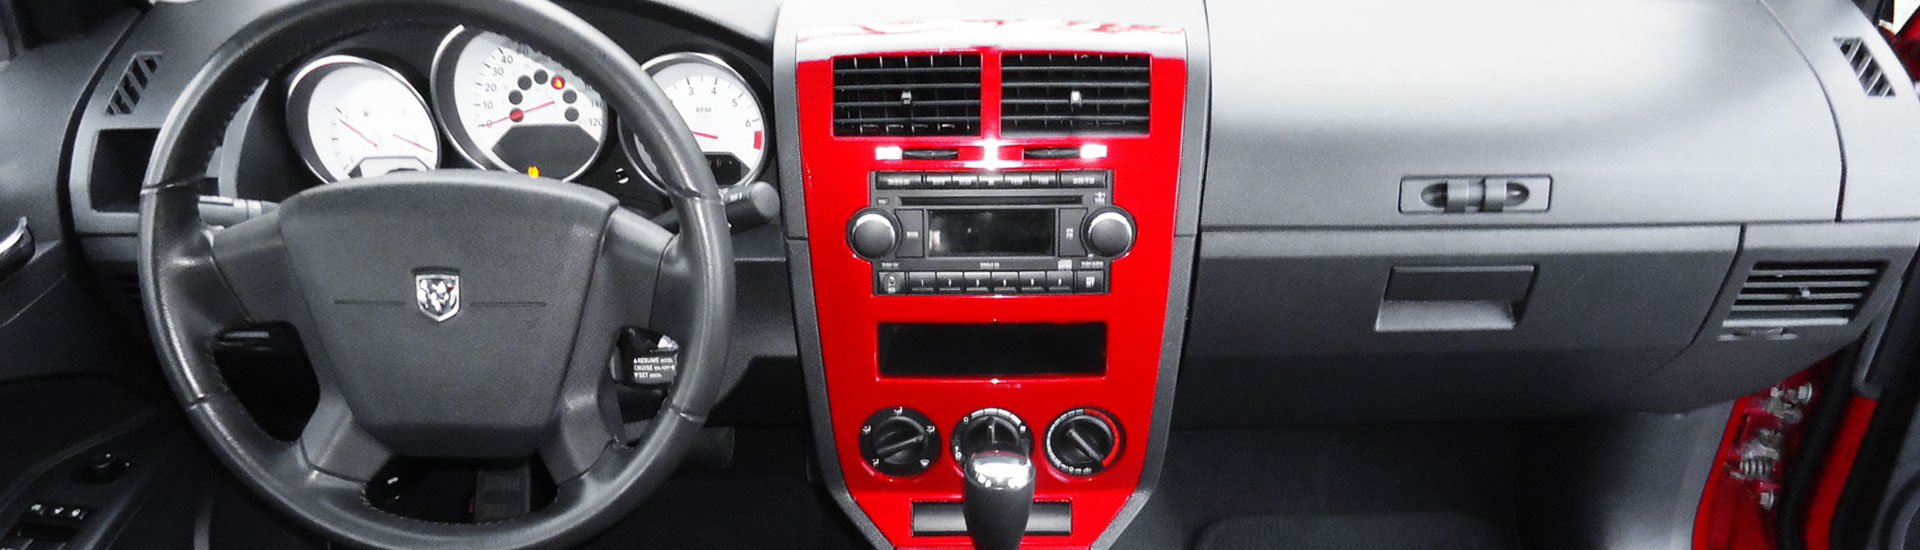 2007 Dodge Ram Custom Dash Kits